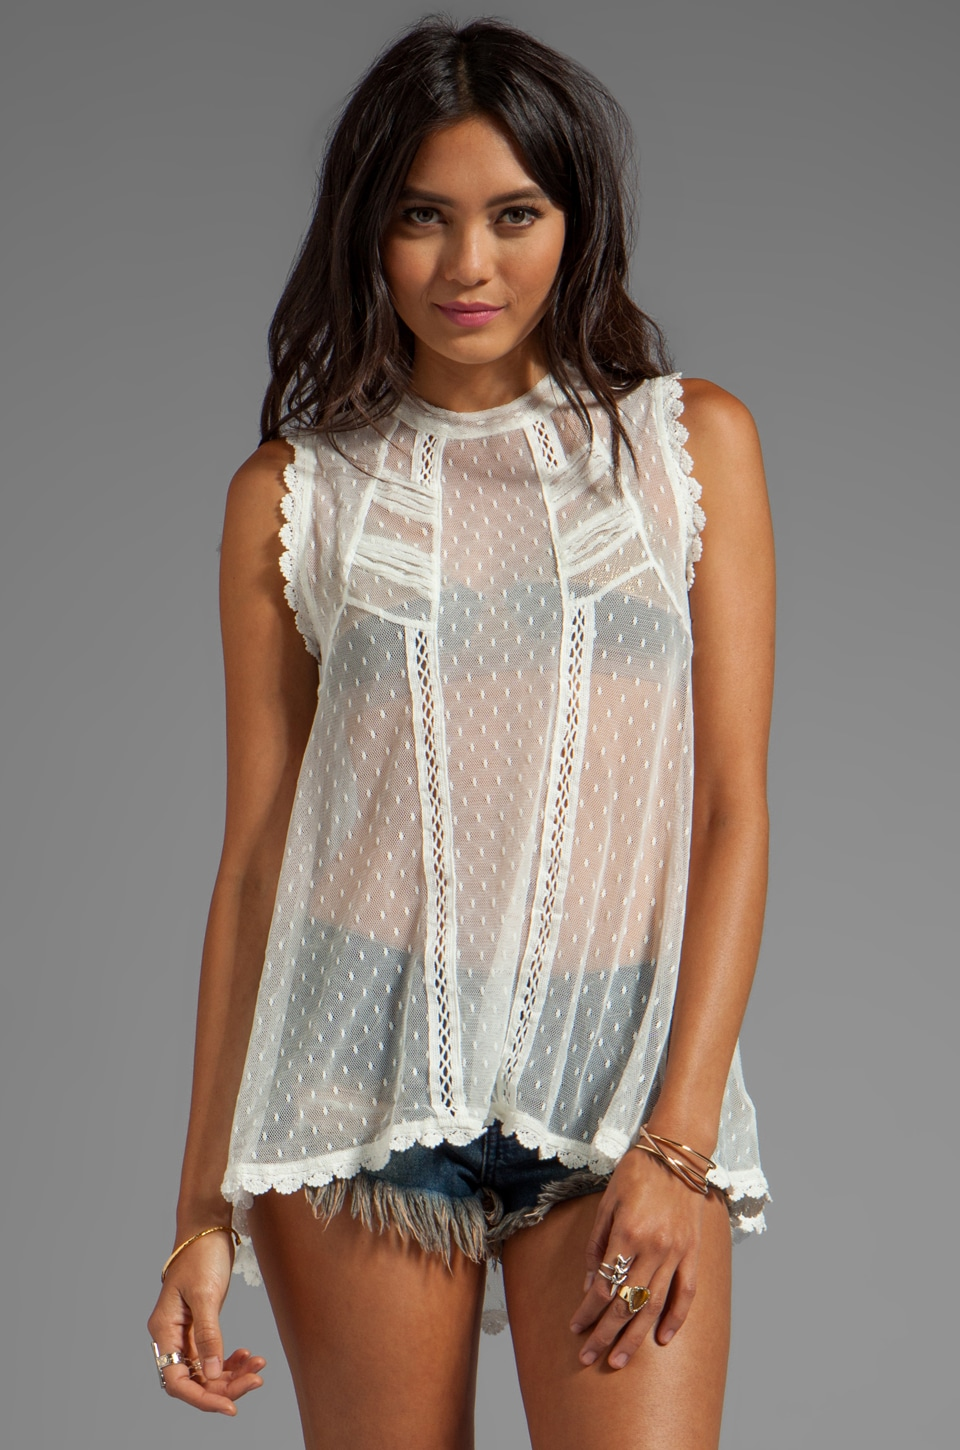 Free People Fiona's Victorian Mesh Top in Ivory